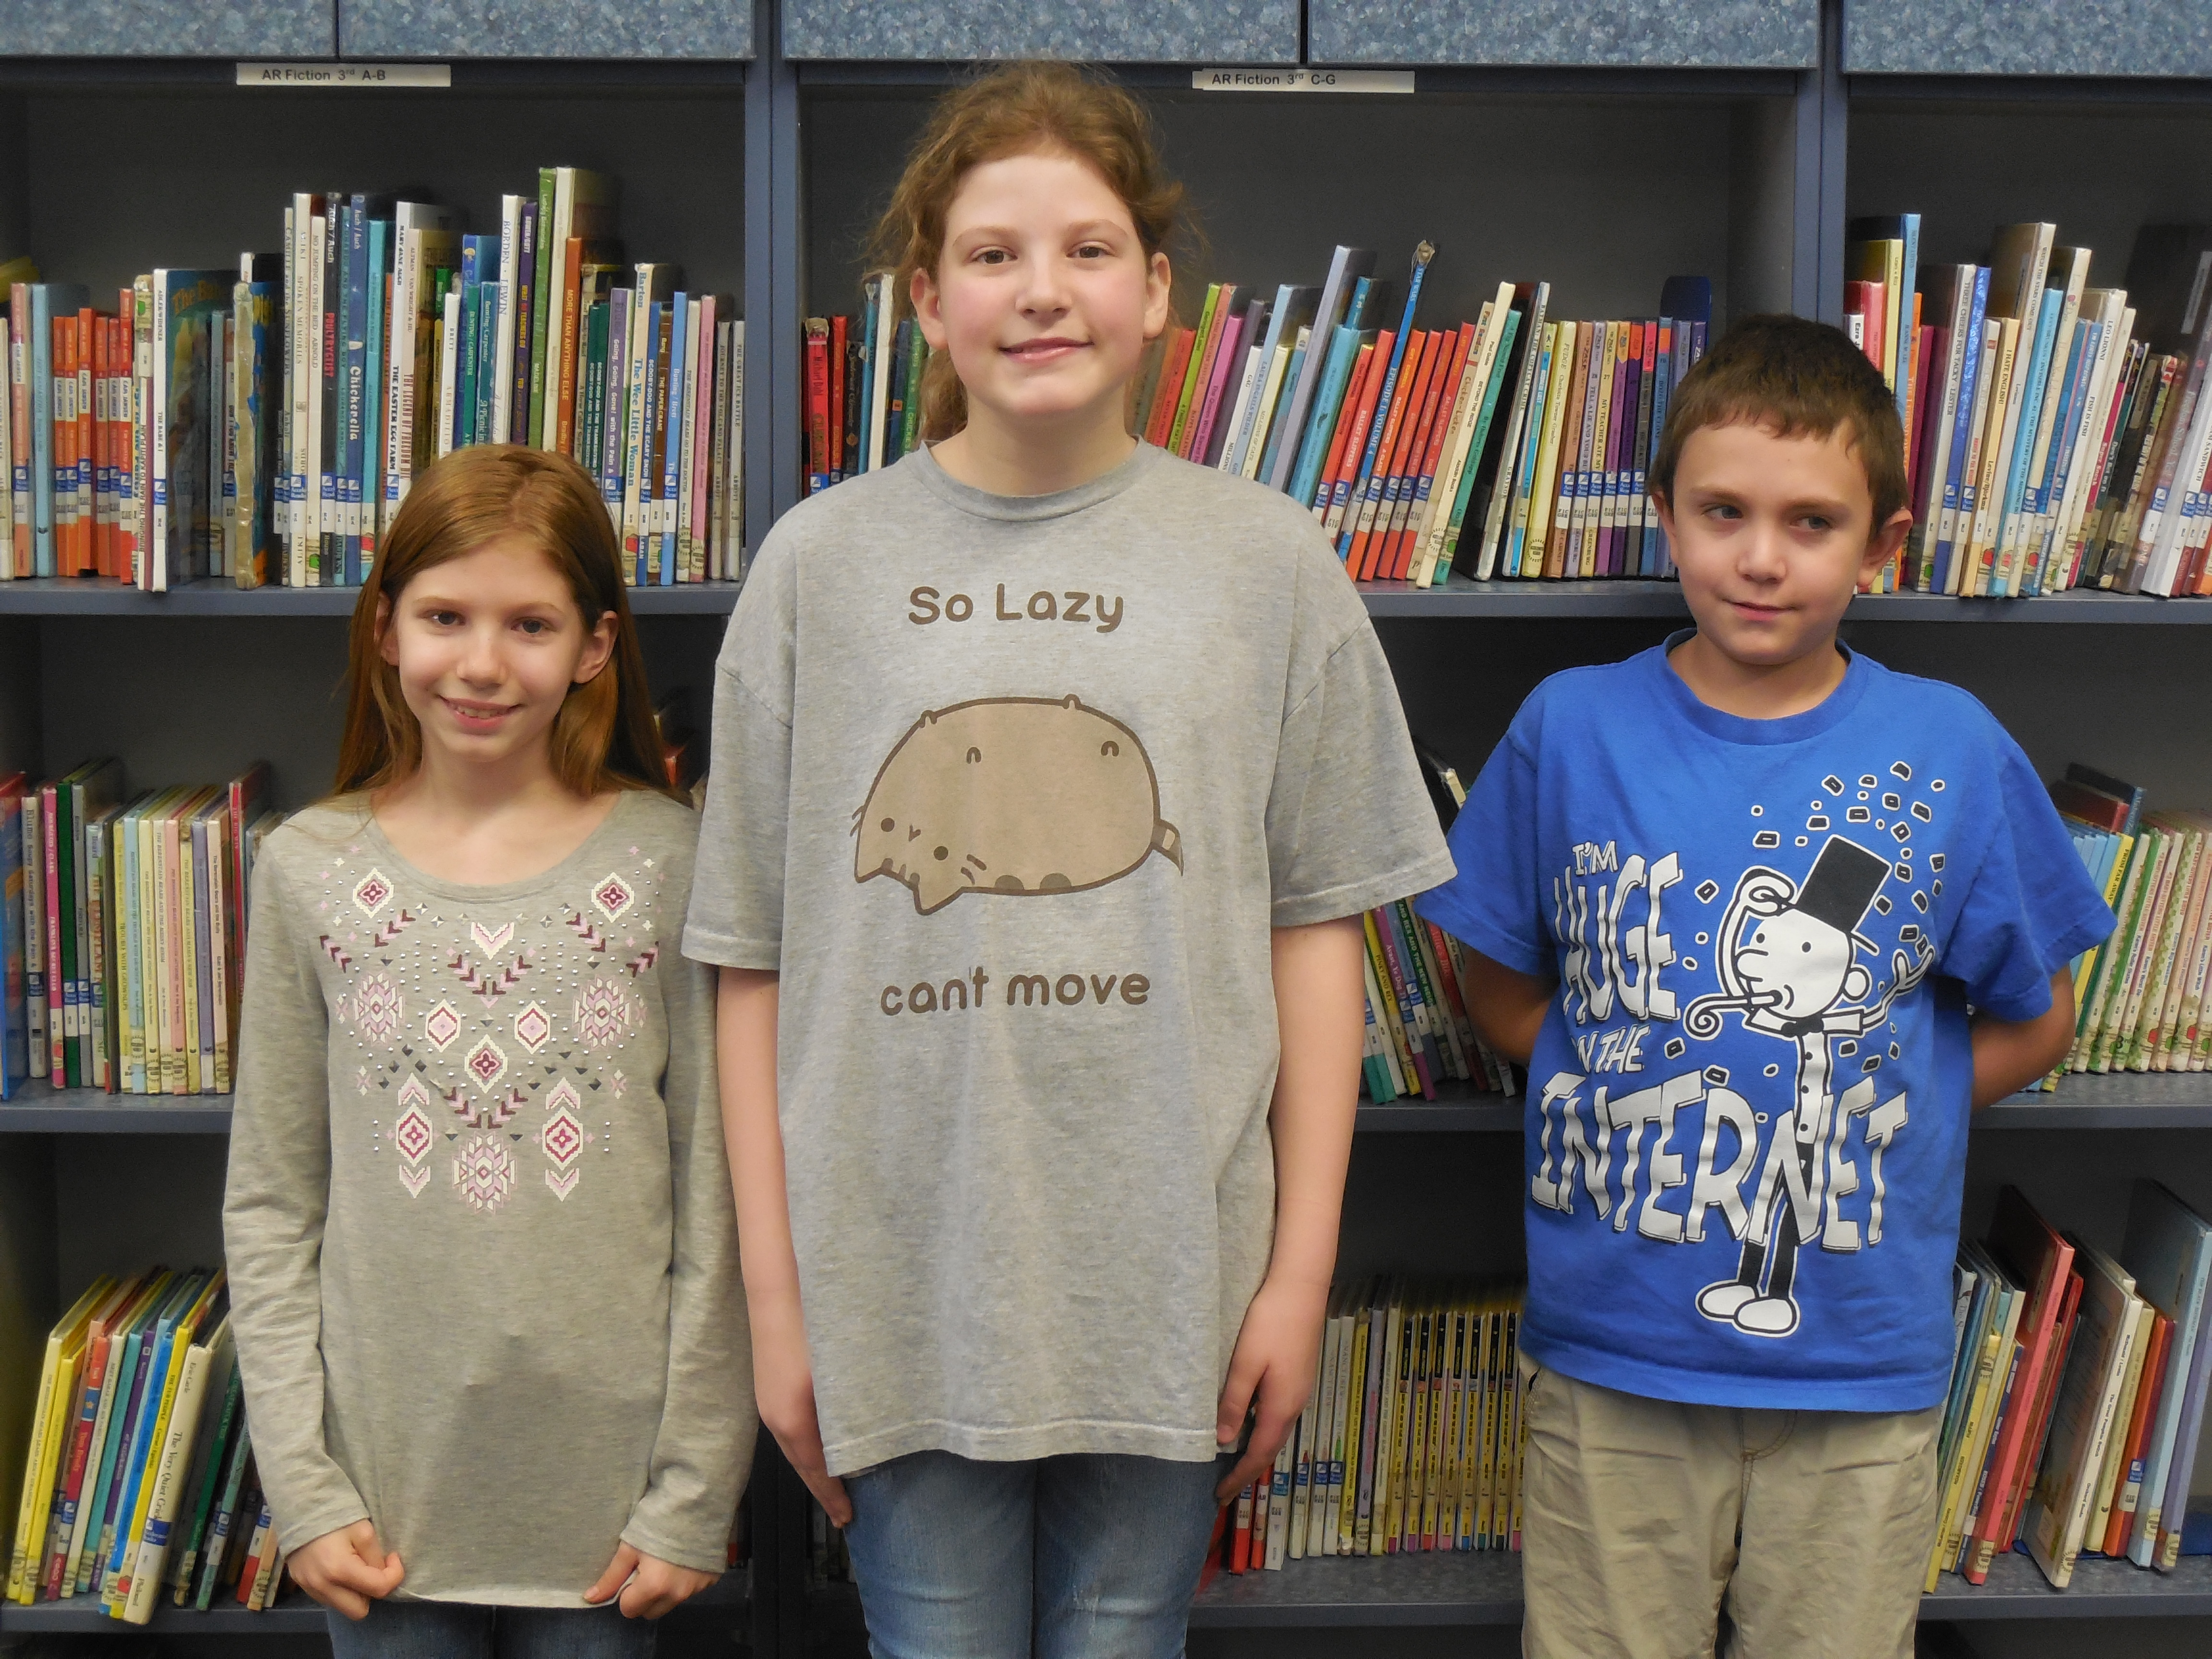 The winning team from the 3rd & 4th grade competition was The Potterheads and Sonic.  Team members include Corinne Beaty, Ella Rose Smith, and Clinton Moreland.